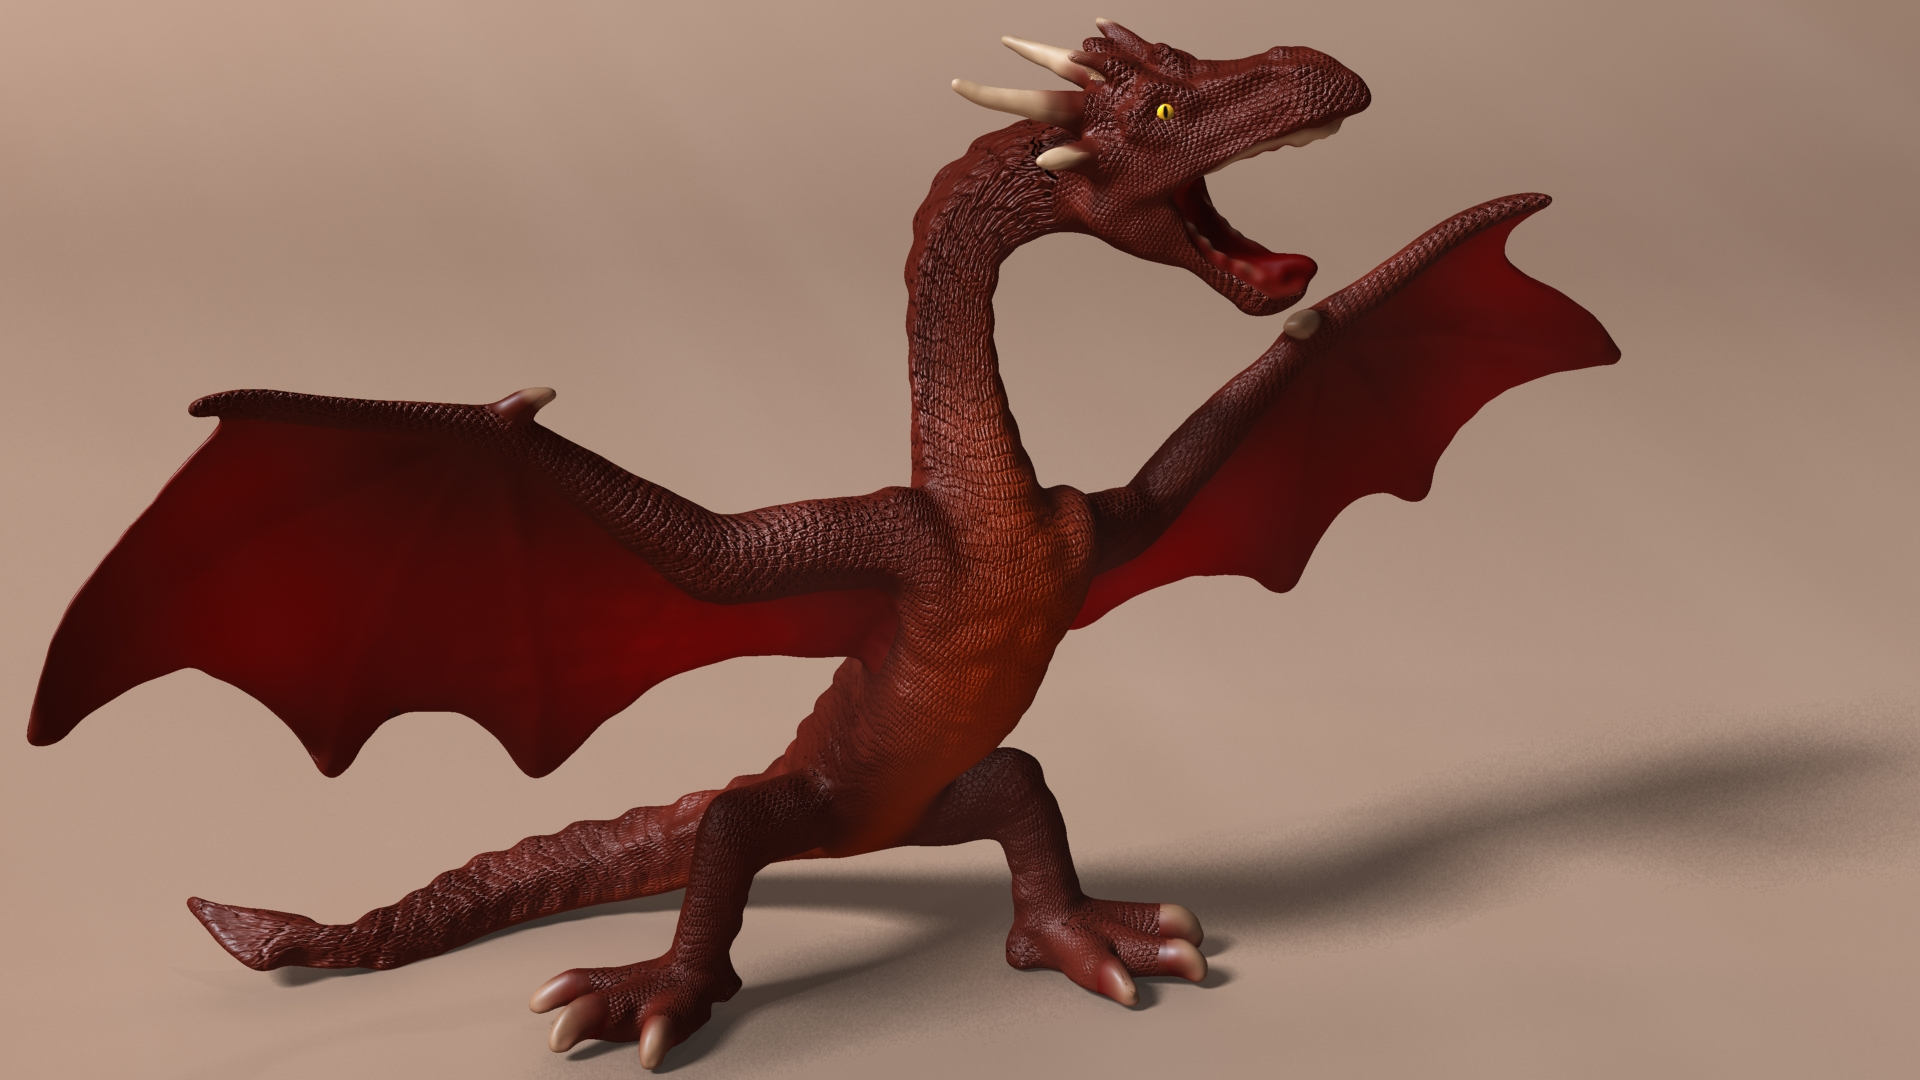 red dragon rigged 3d model max fbx  obj 224256